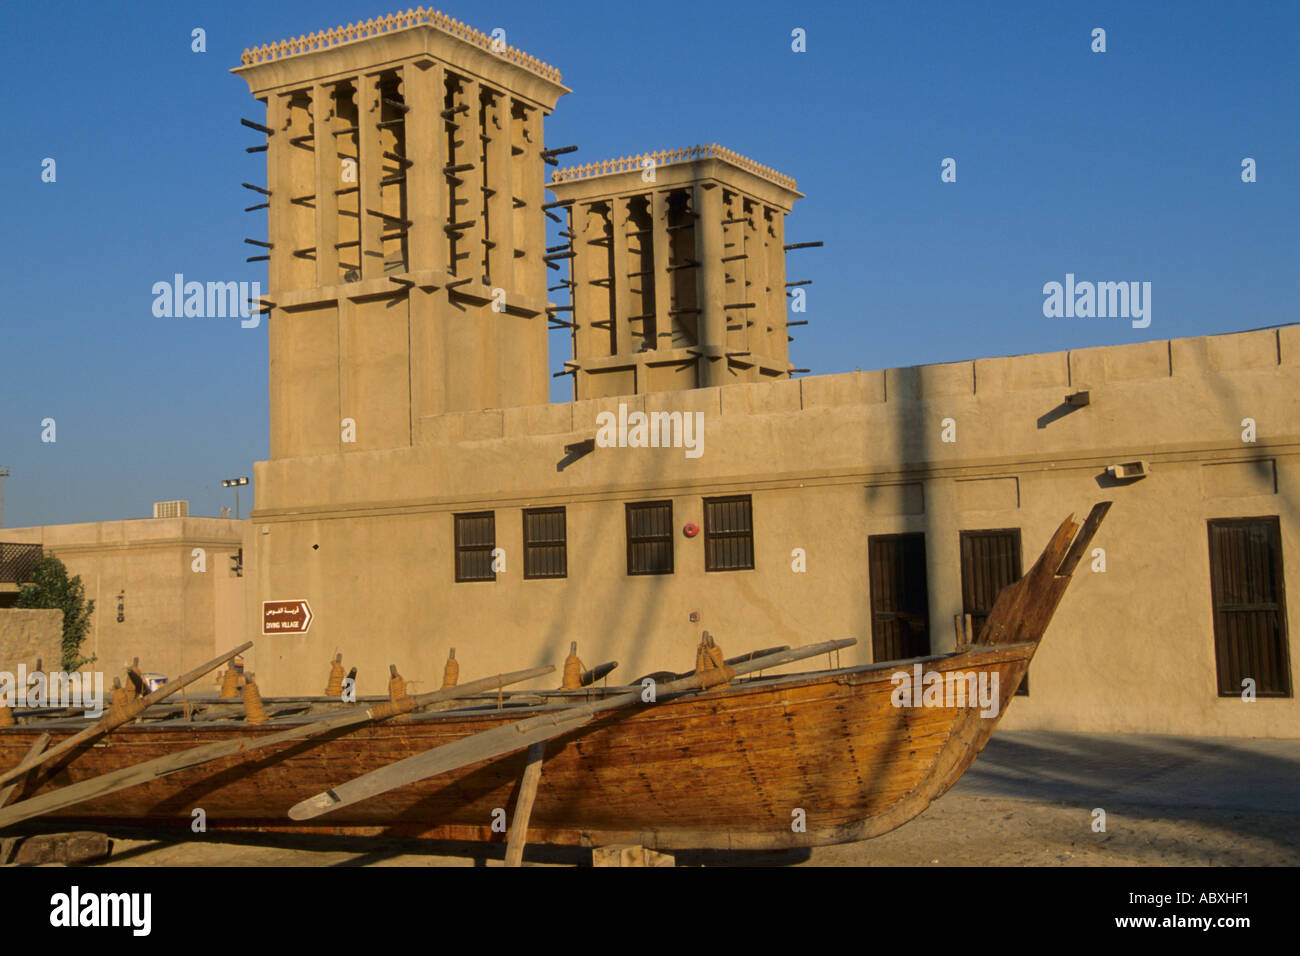 Uae Dubai Traditional Architecture Stock Photo Royalty Free Image 4237808 Alamy